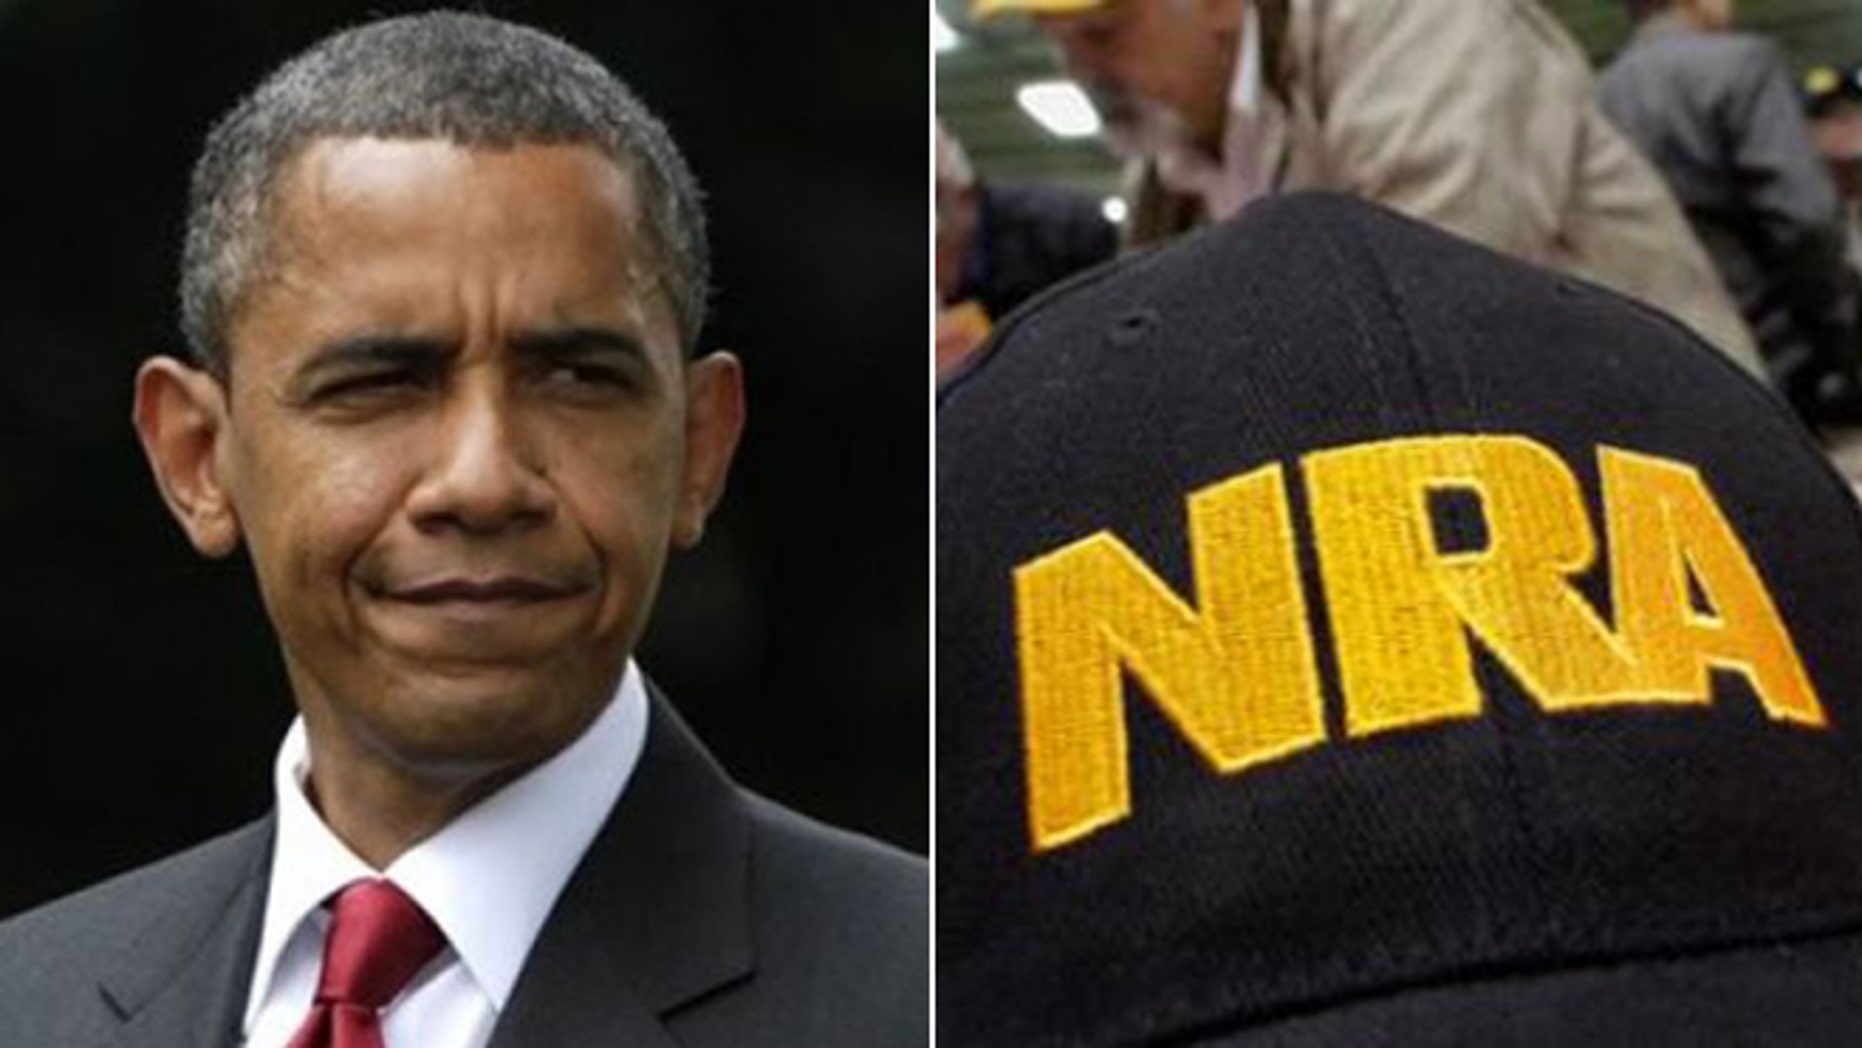 President Barack Obama and memorabilia from the National Rifle Association are shown in this composite.